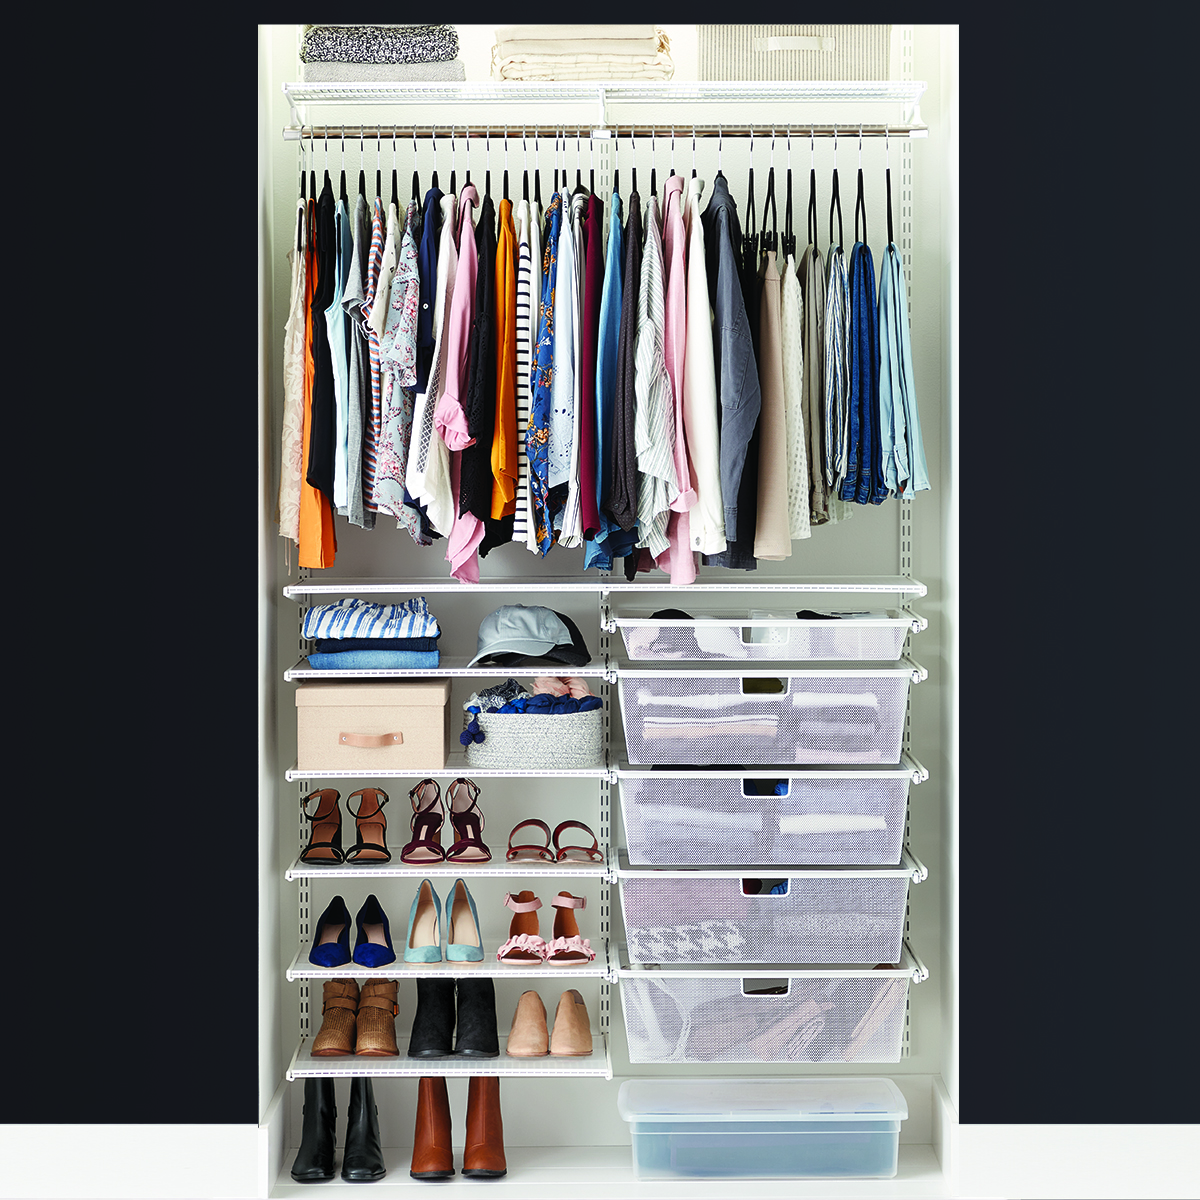 Elfa Classic 4' White Reach-In Clothes Closet